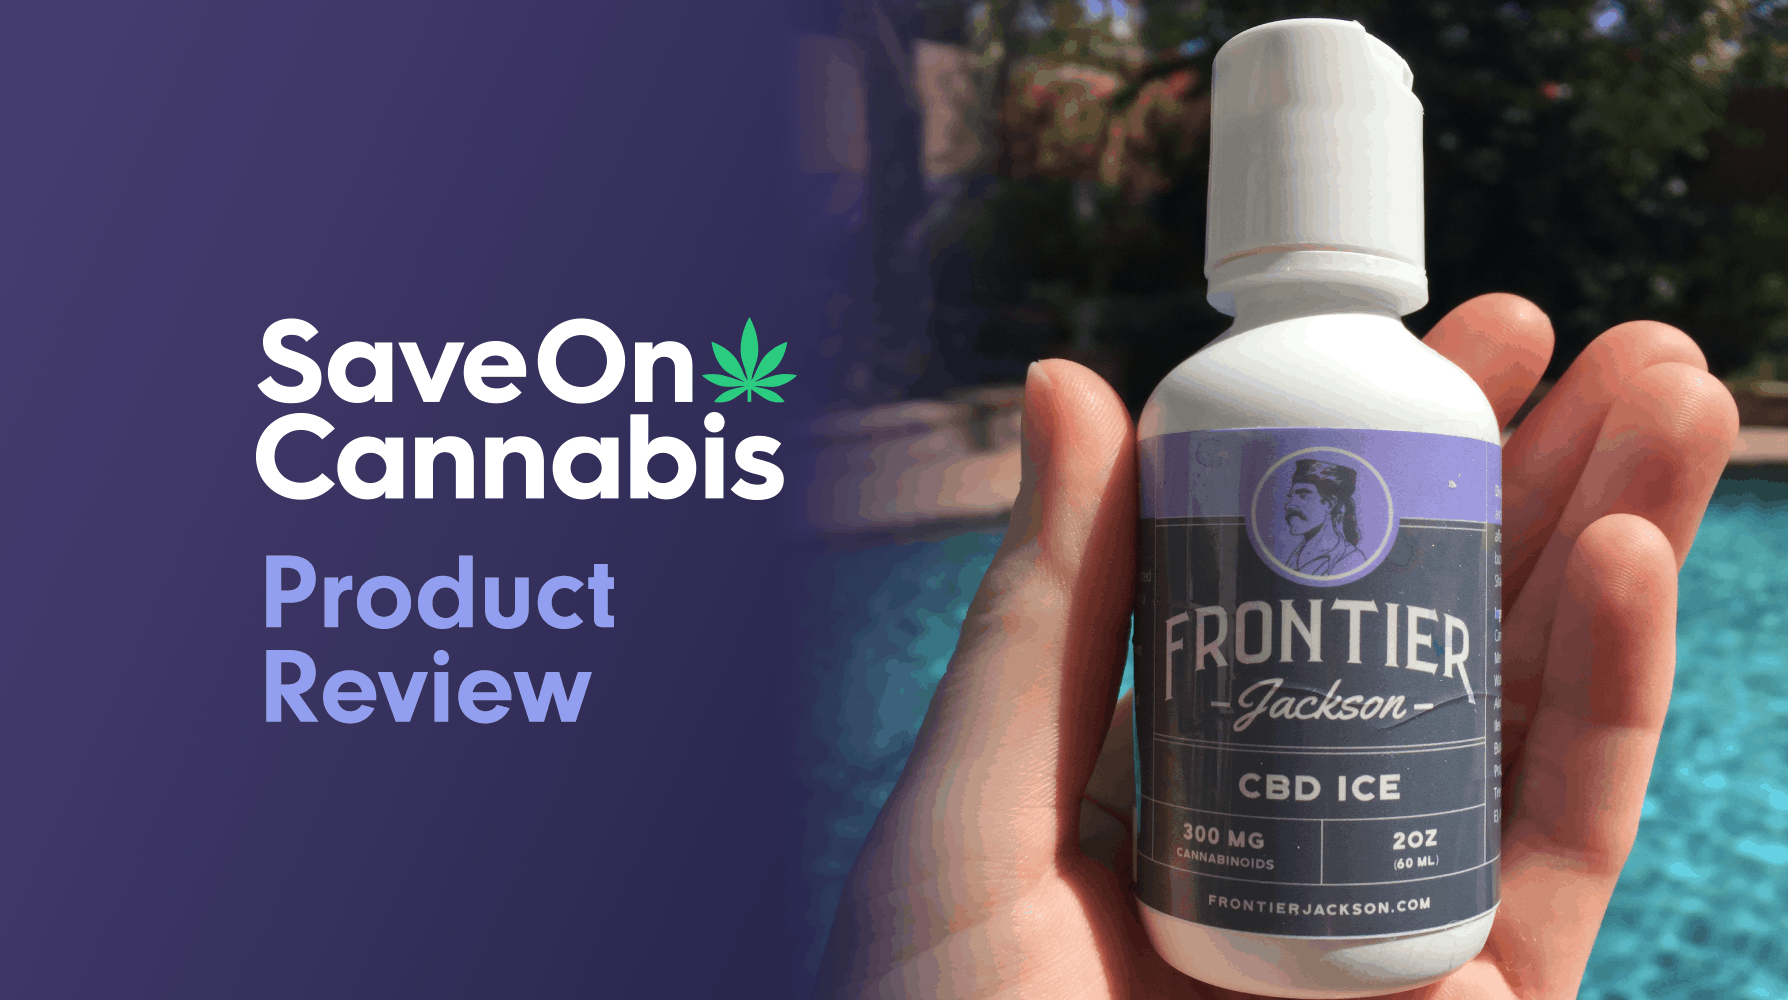 frontier jackson cbd ice review save on cannabis website